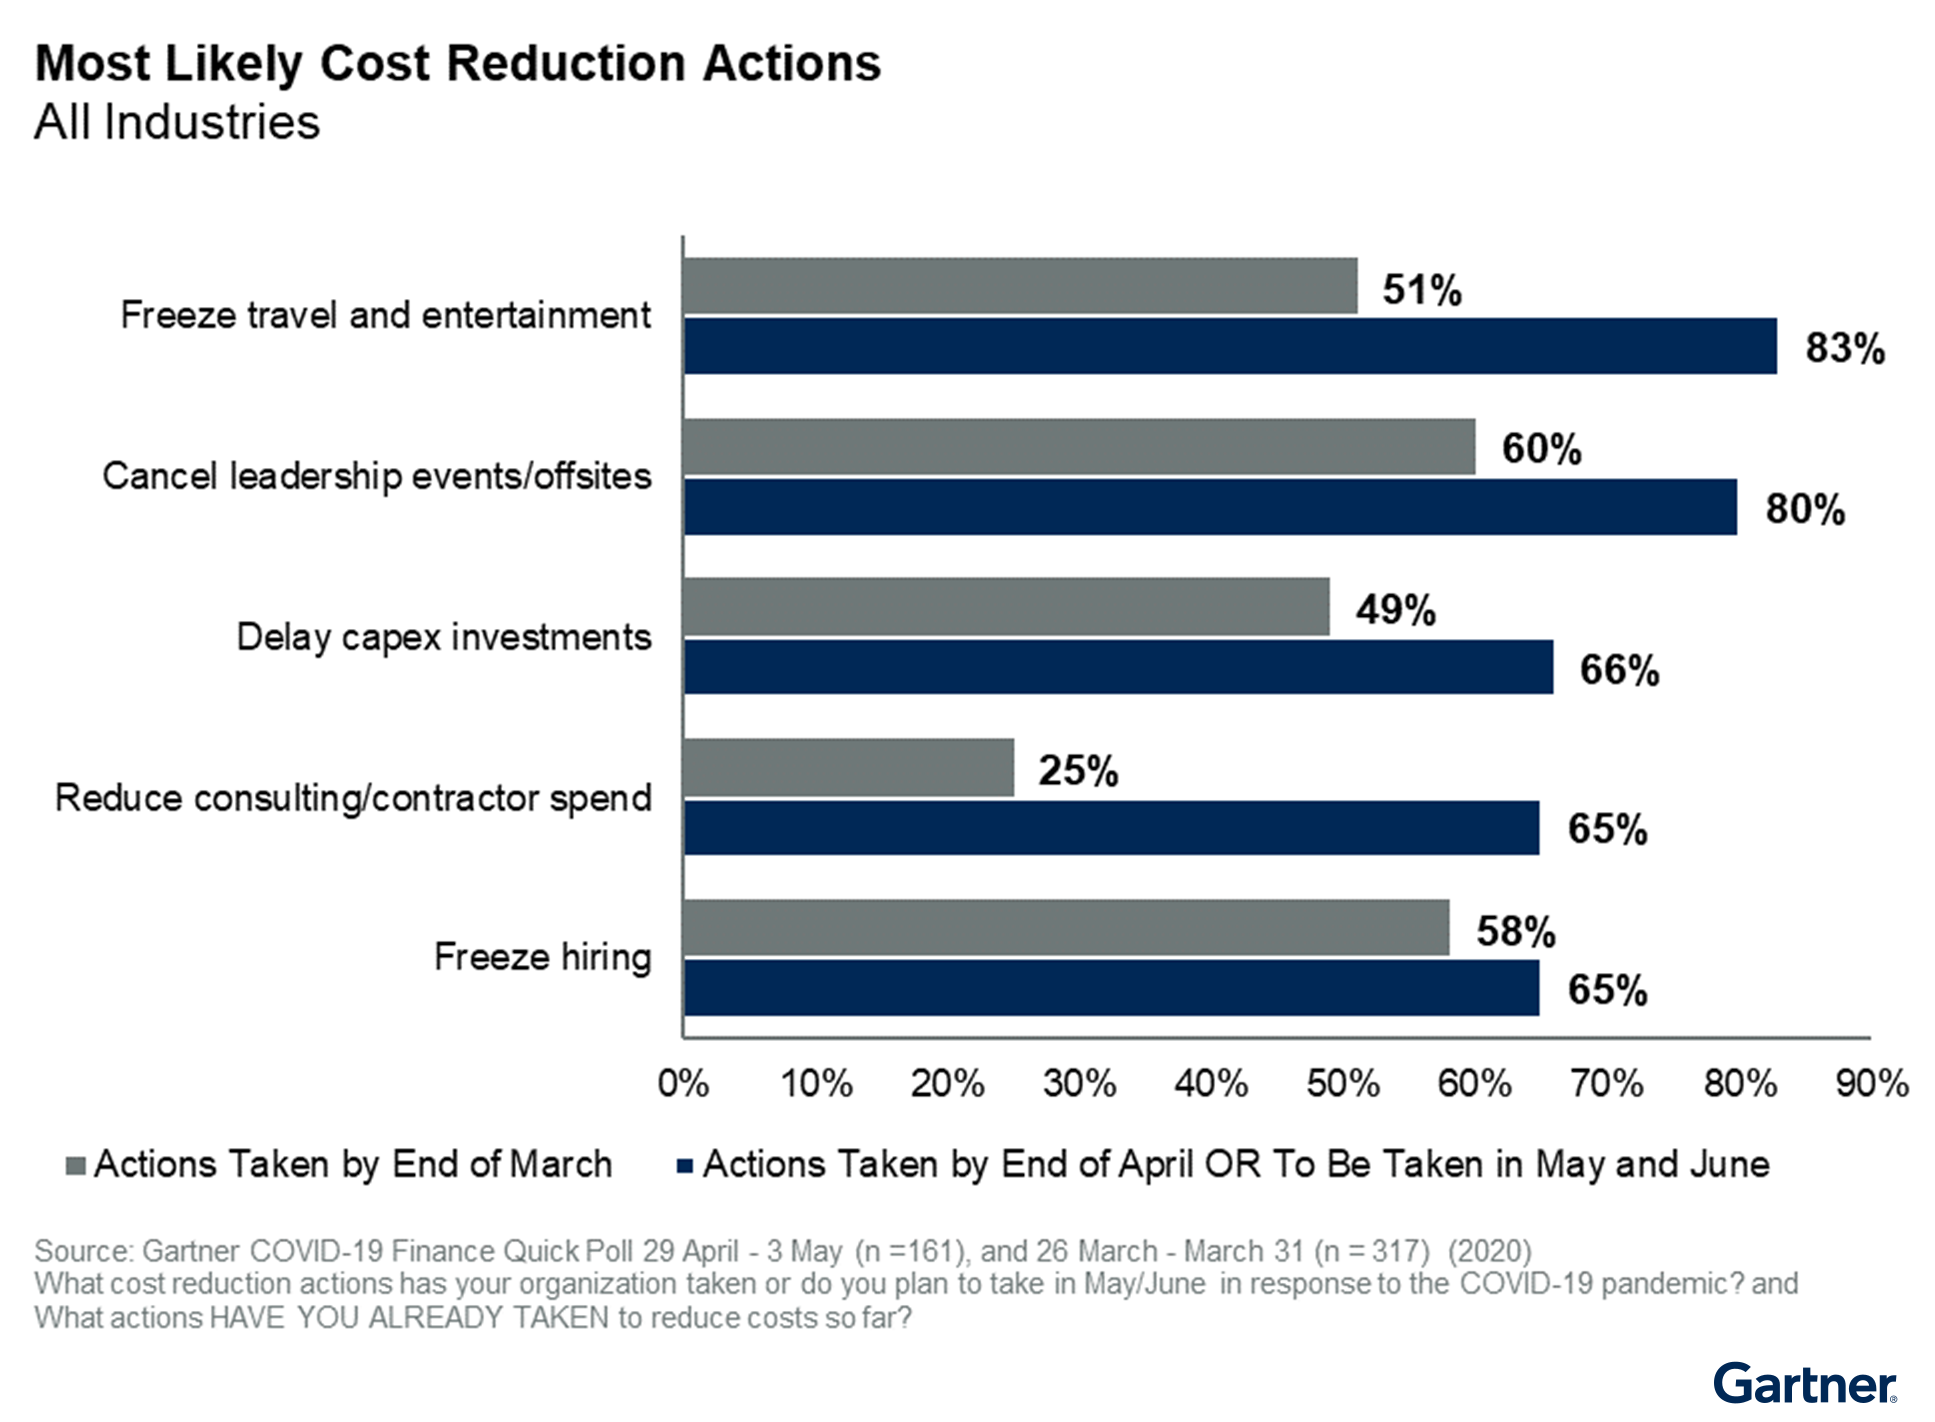 Figure 2. Most Likely Cost Reduction Actions